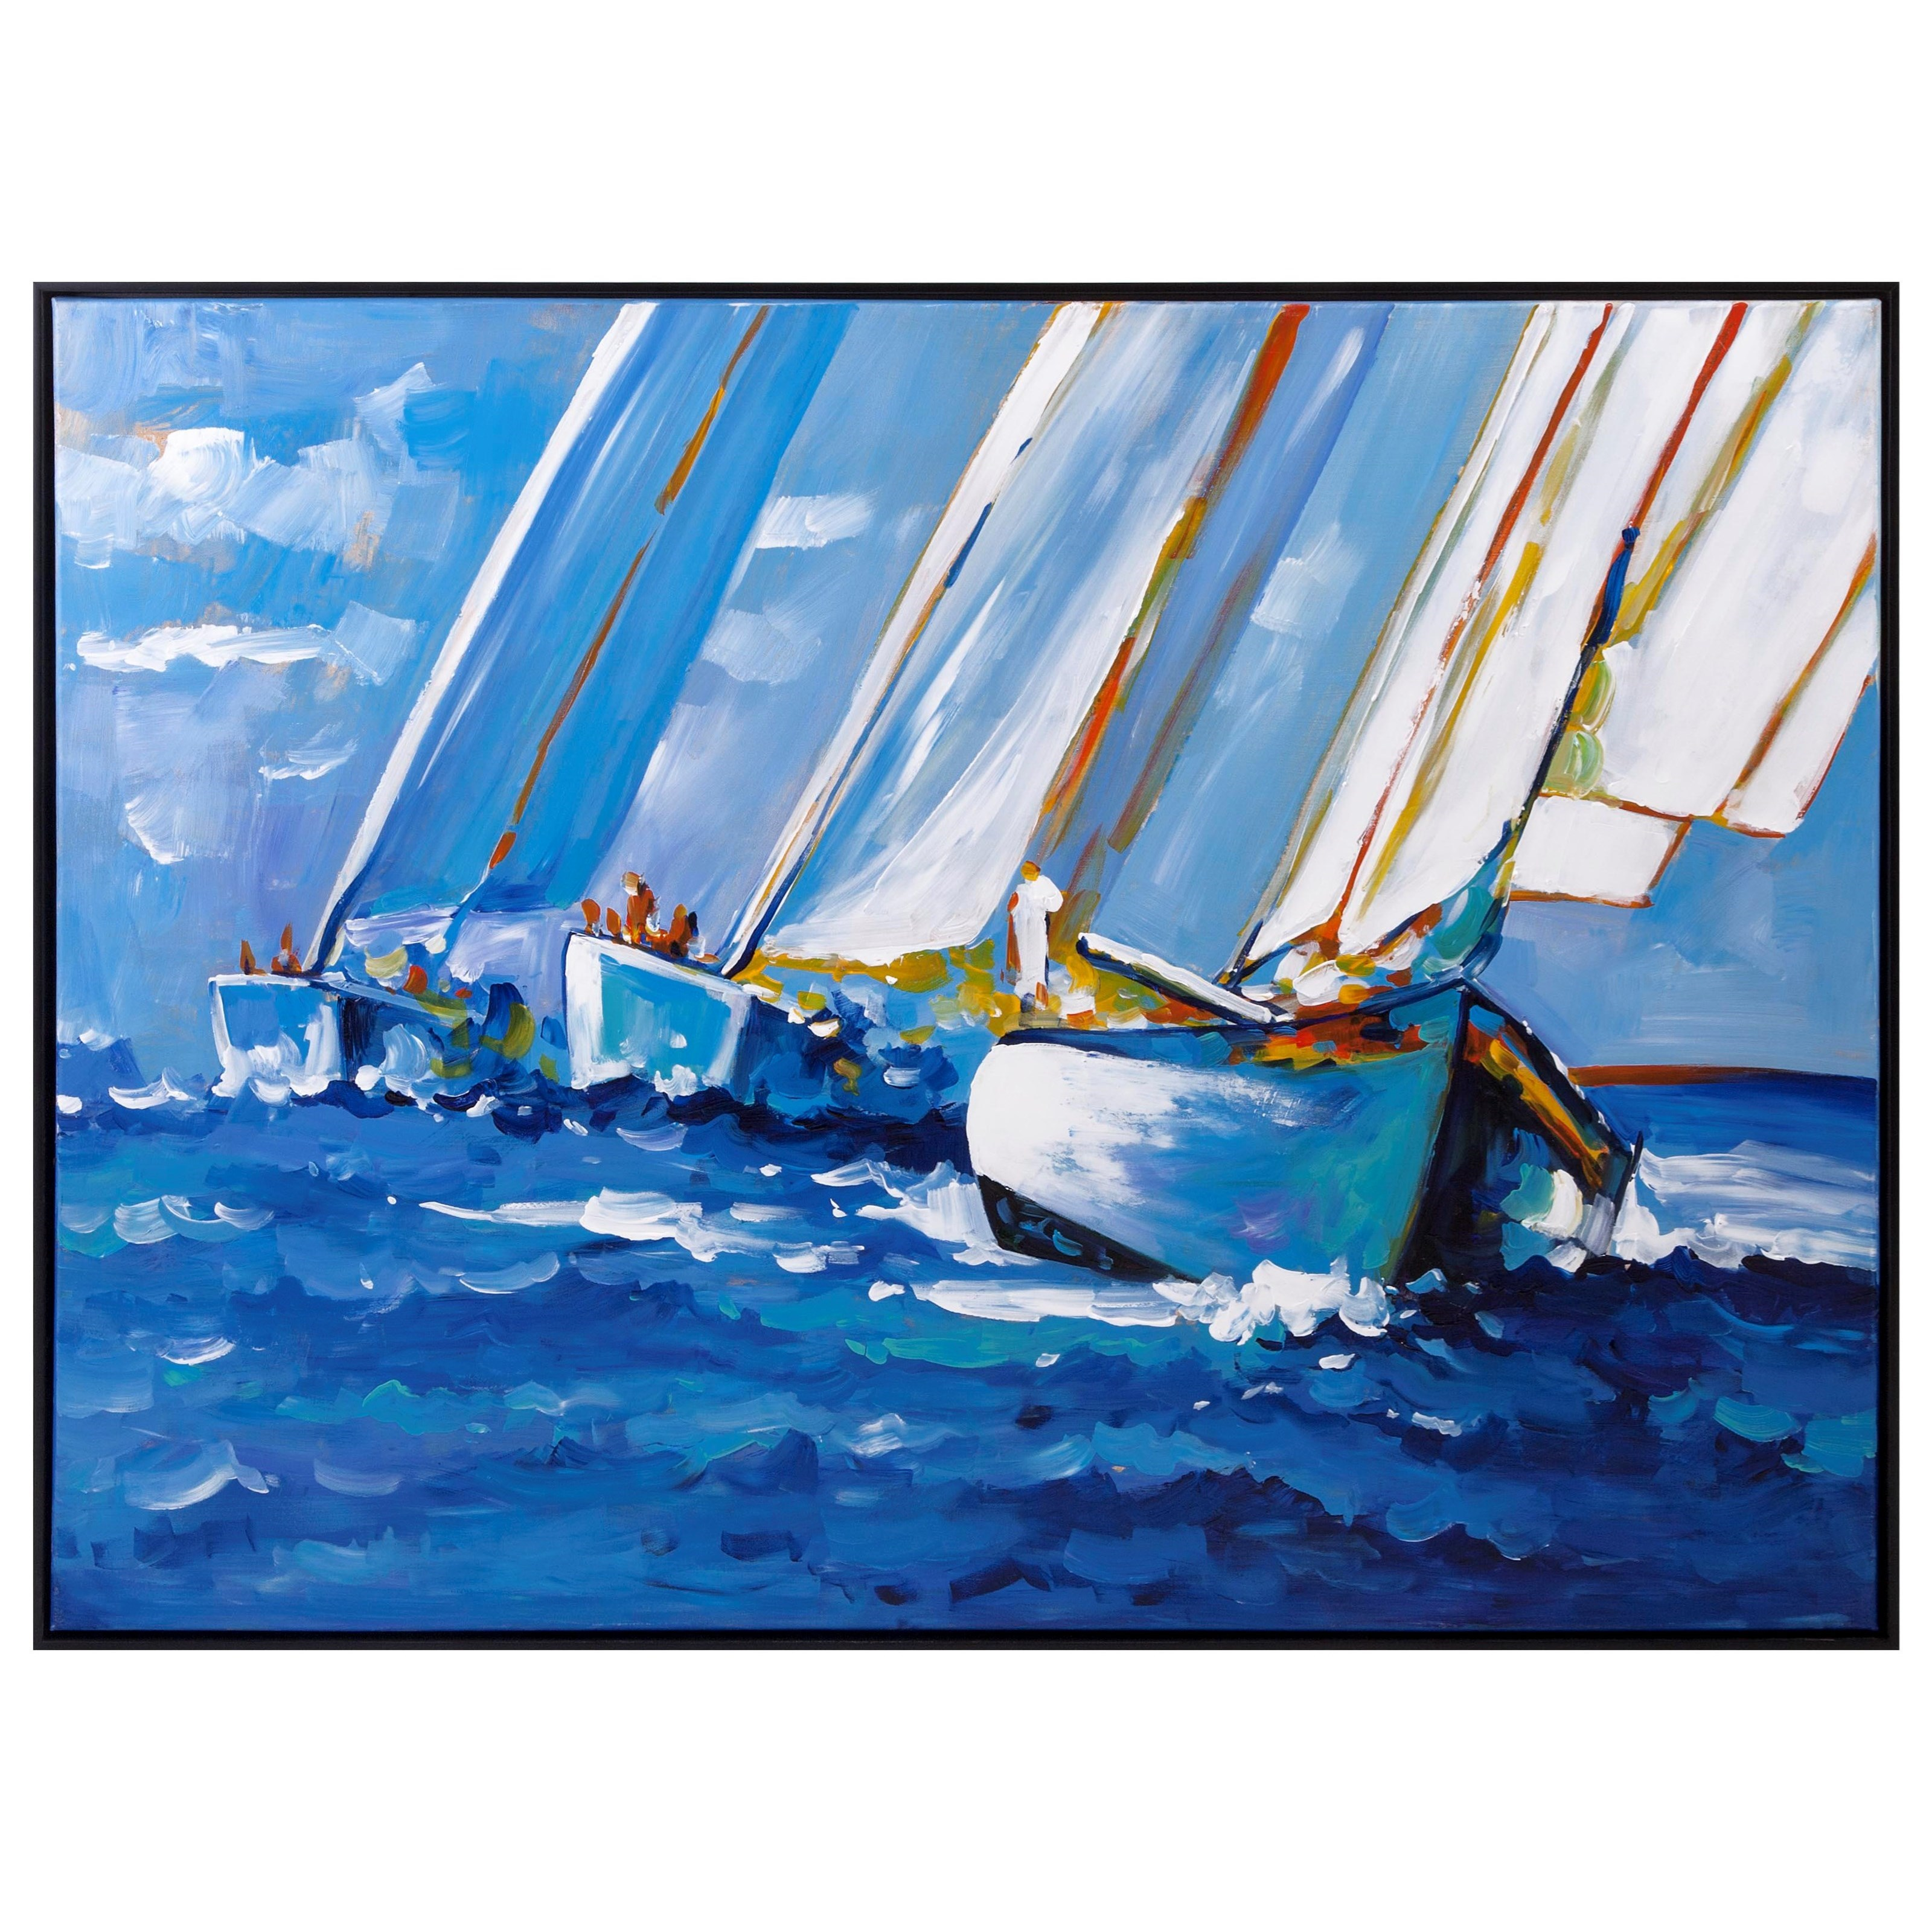 Imax Worldwide Home Wall Art Sail Away Framed Oil Painting Lagniappe Home Store Prints Paintings